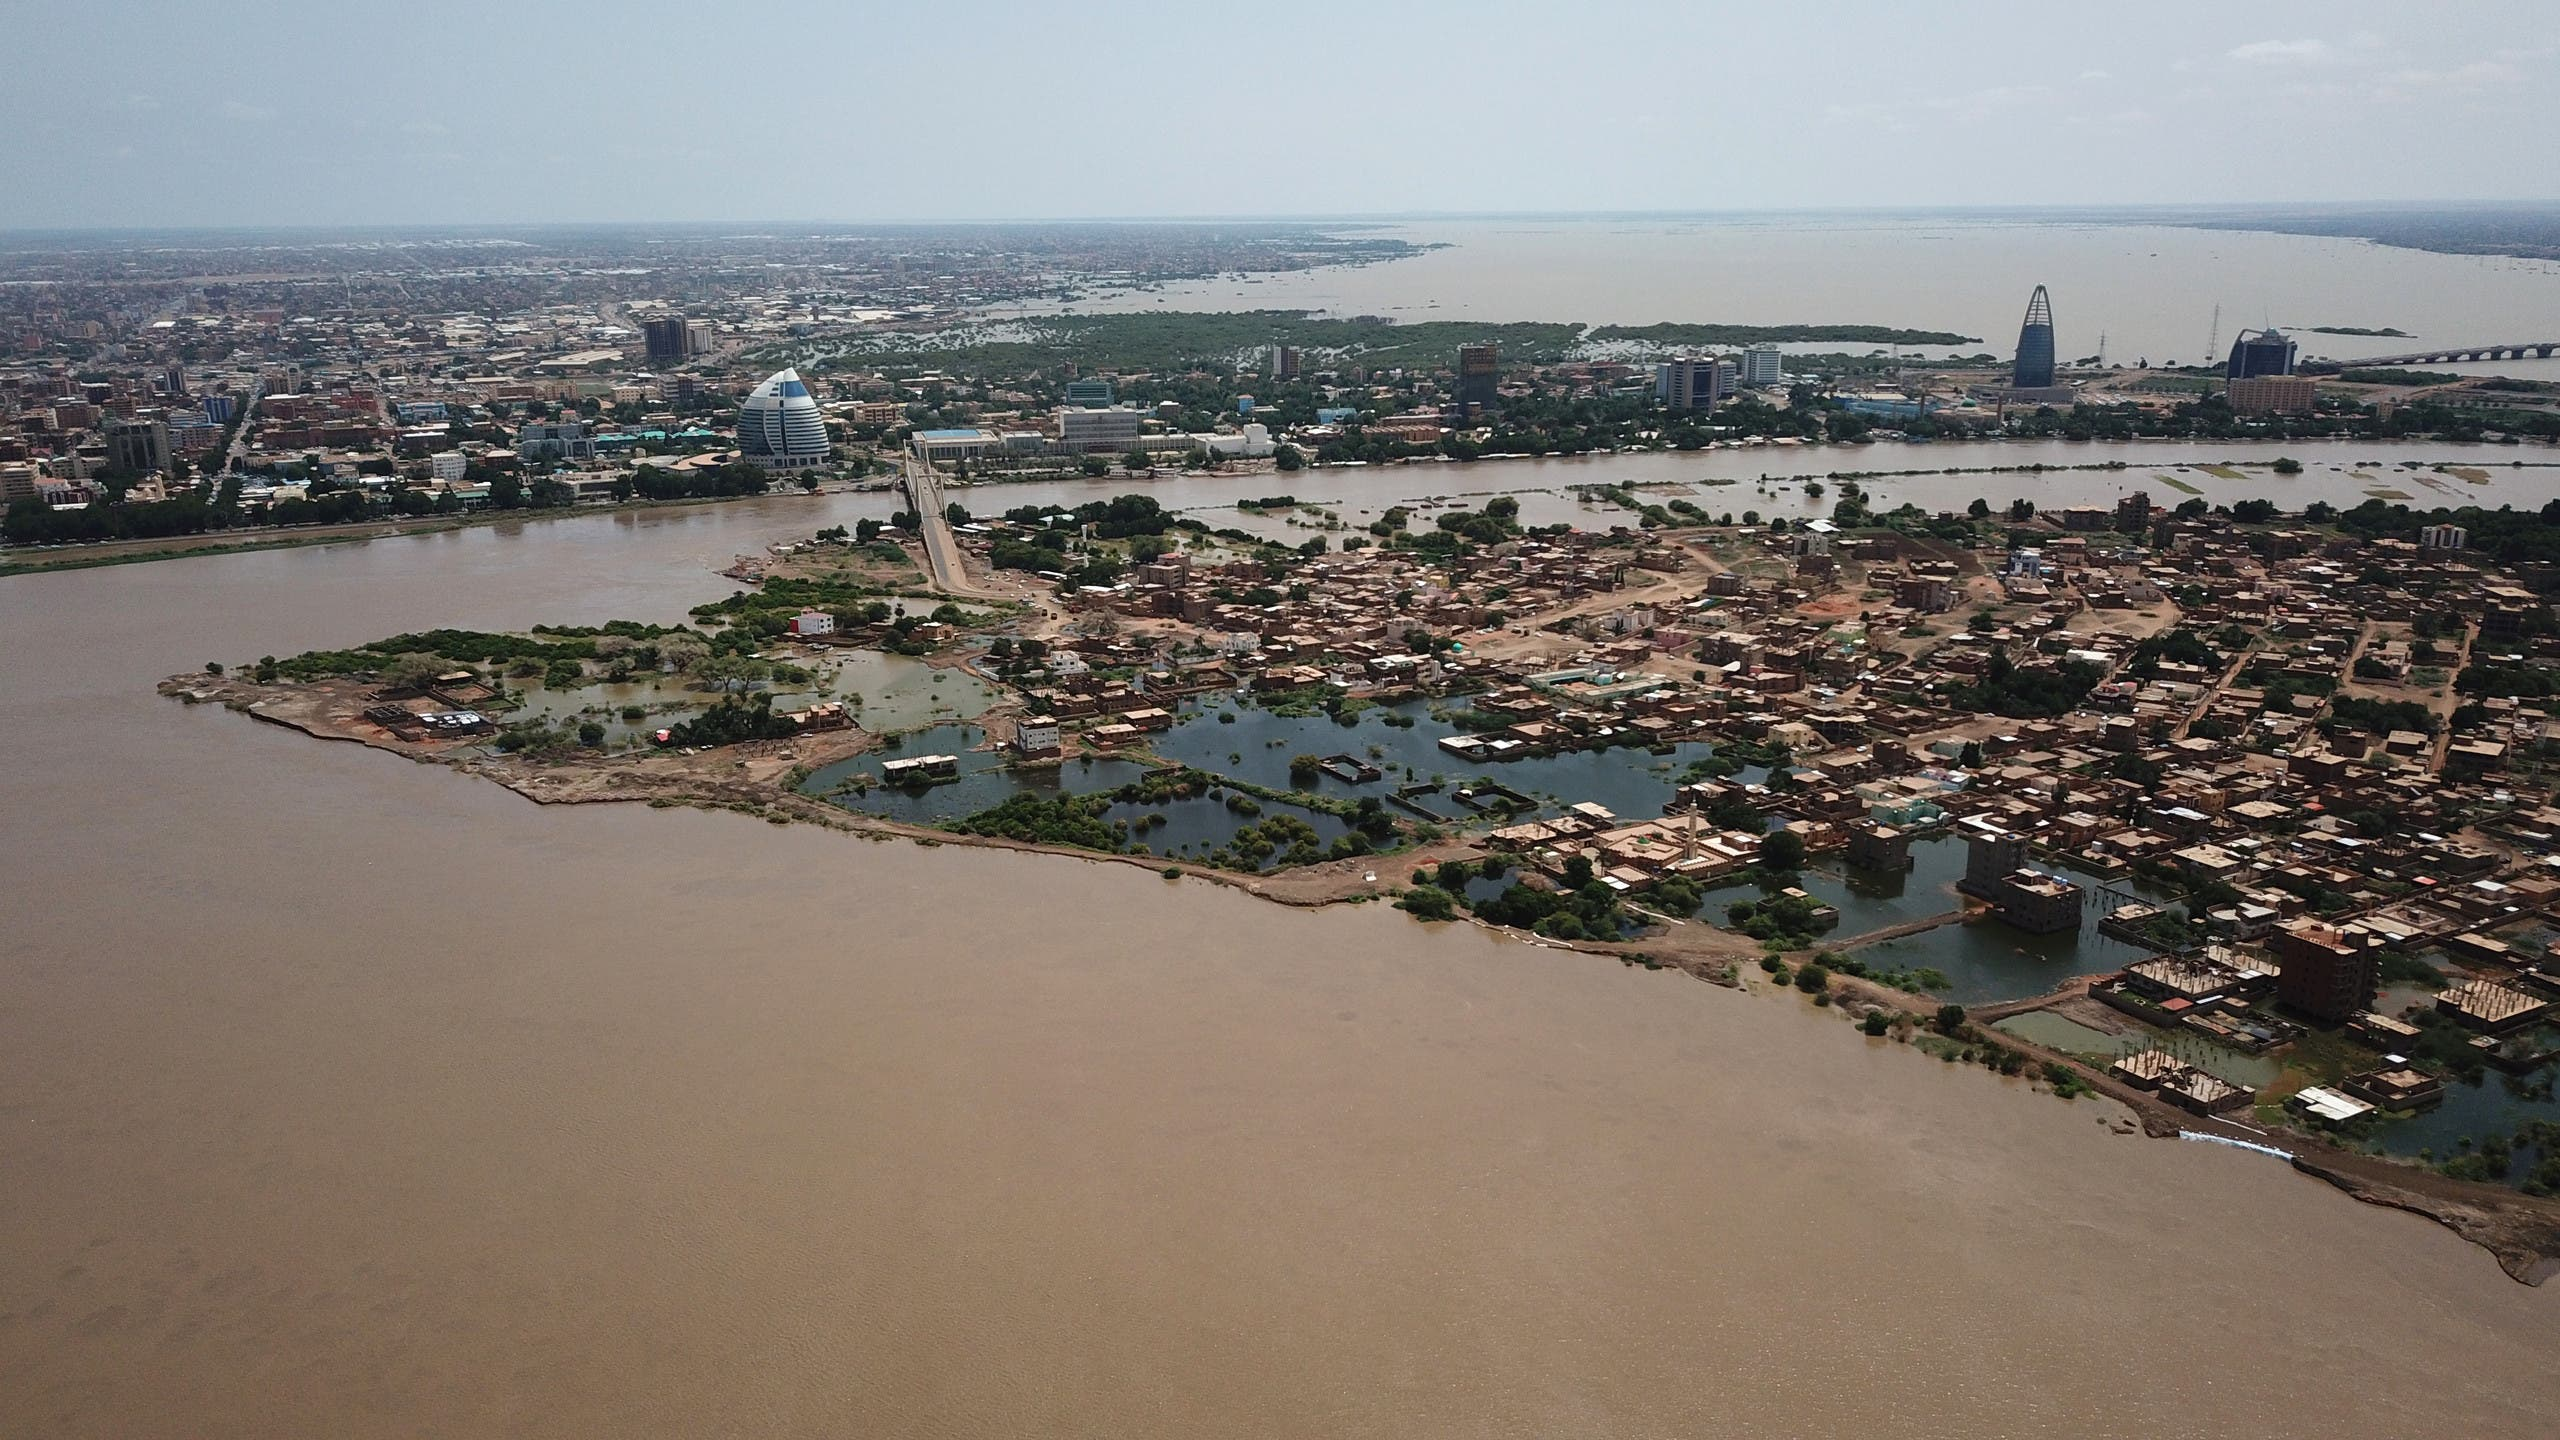 An aerial view shows buildings and roads submerged by floodwaters near the Nile River in South Khartoum. (Reuters)